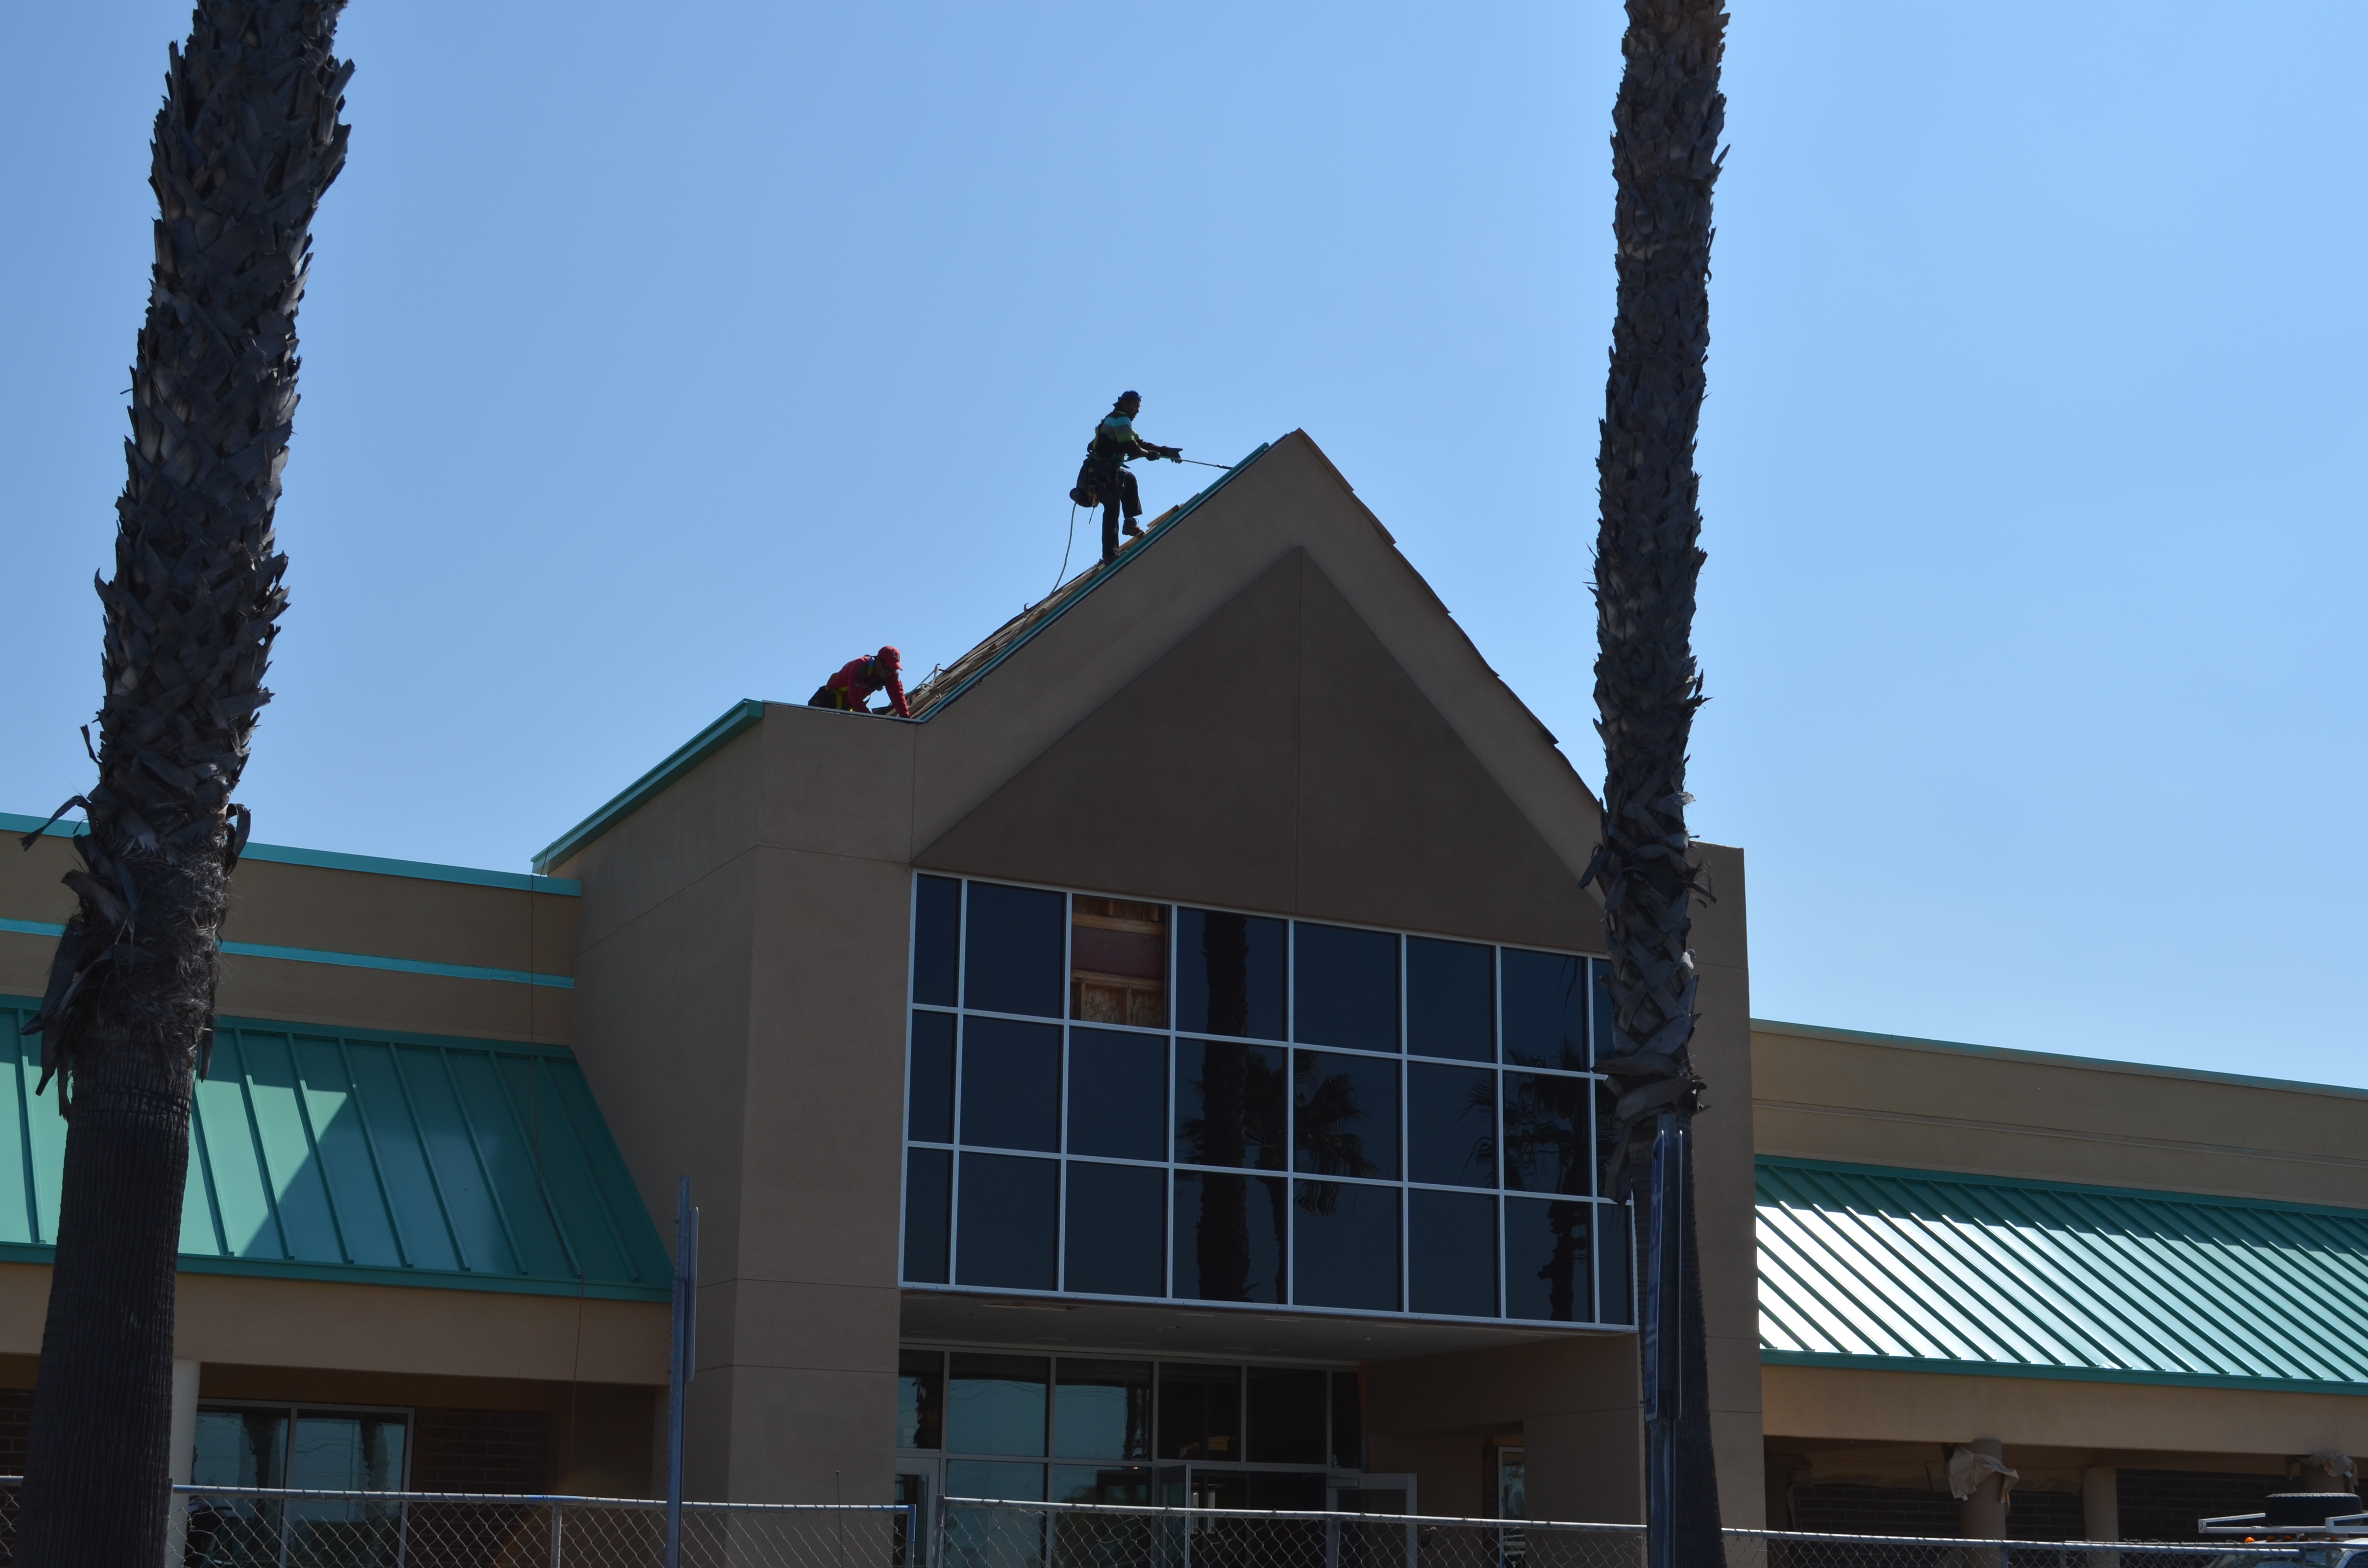 Painted Metal Roofing Cms Metal Fabrication